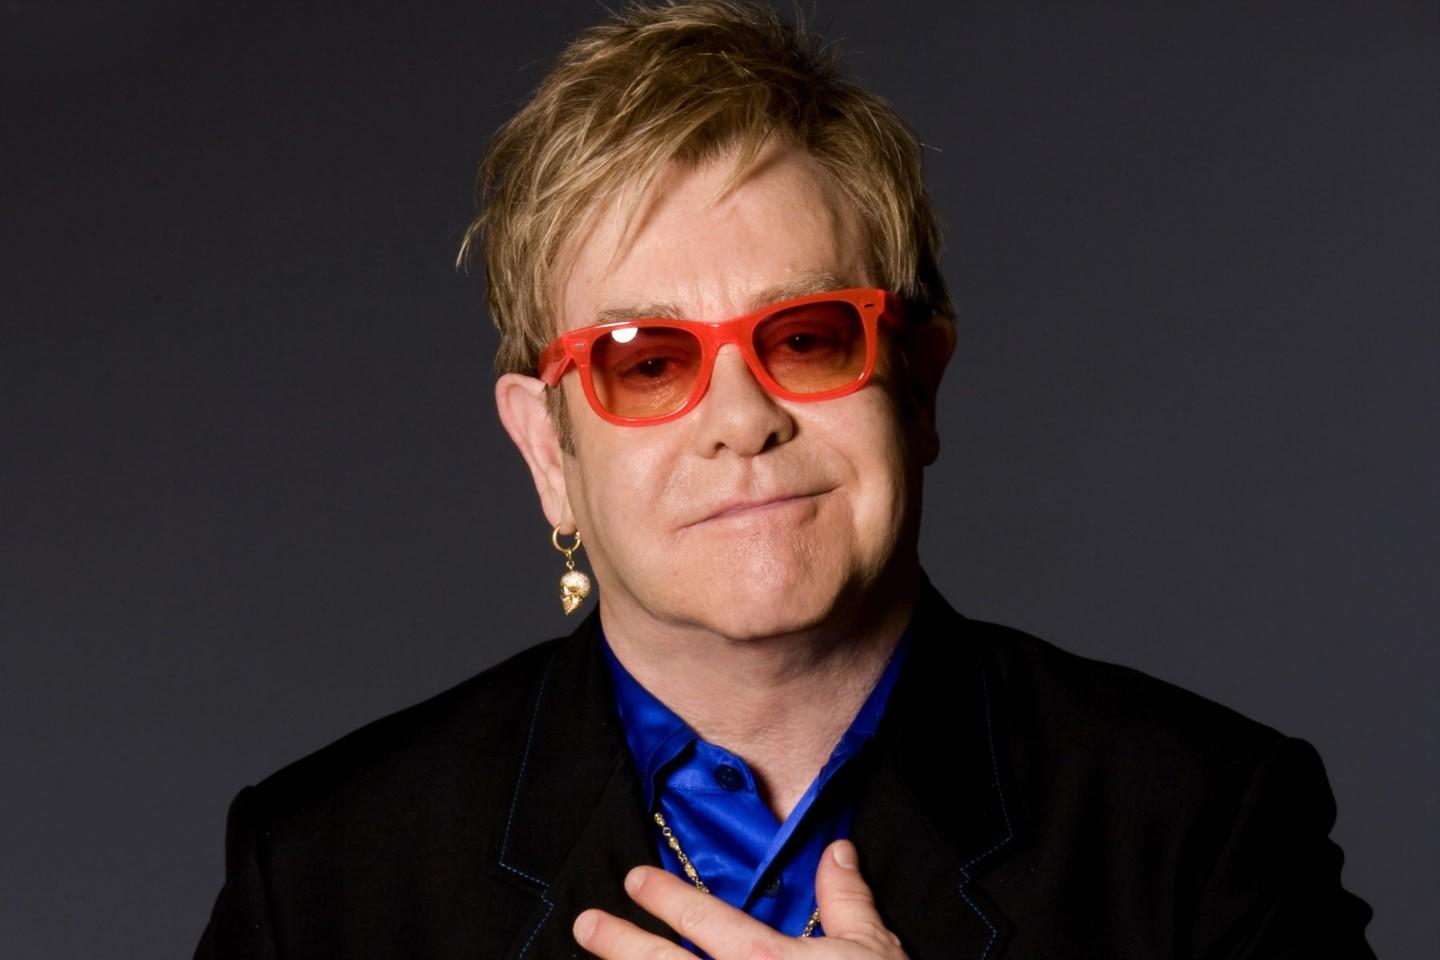 - 2020 Tour  Laughlin Event Center  October 28 Elton John Tickets | Elton John Tour Dates 2020 and Concert